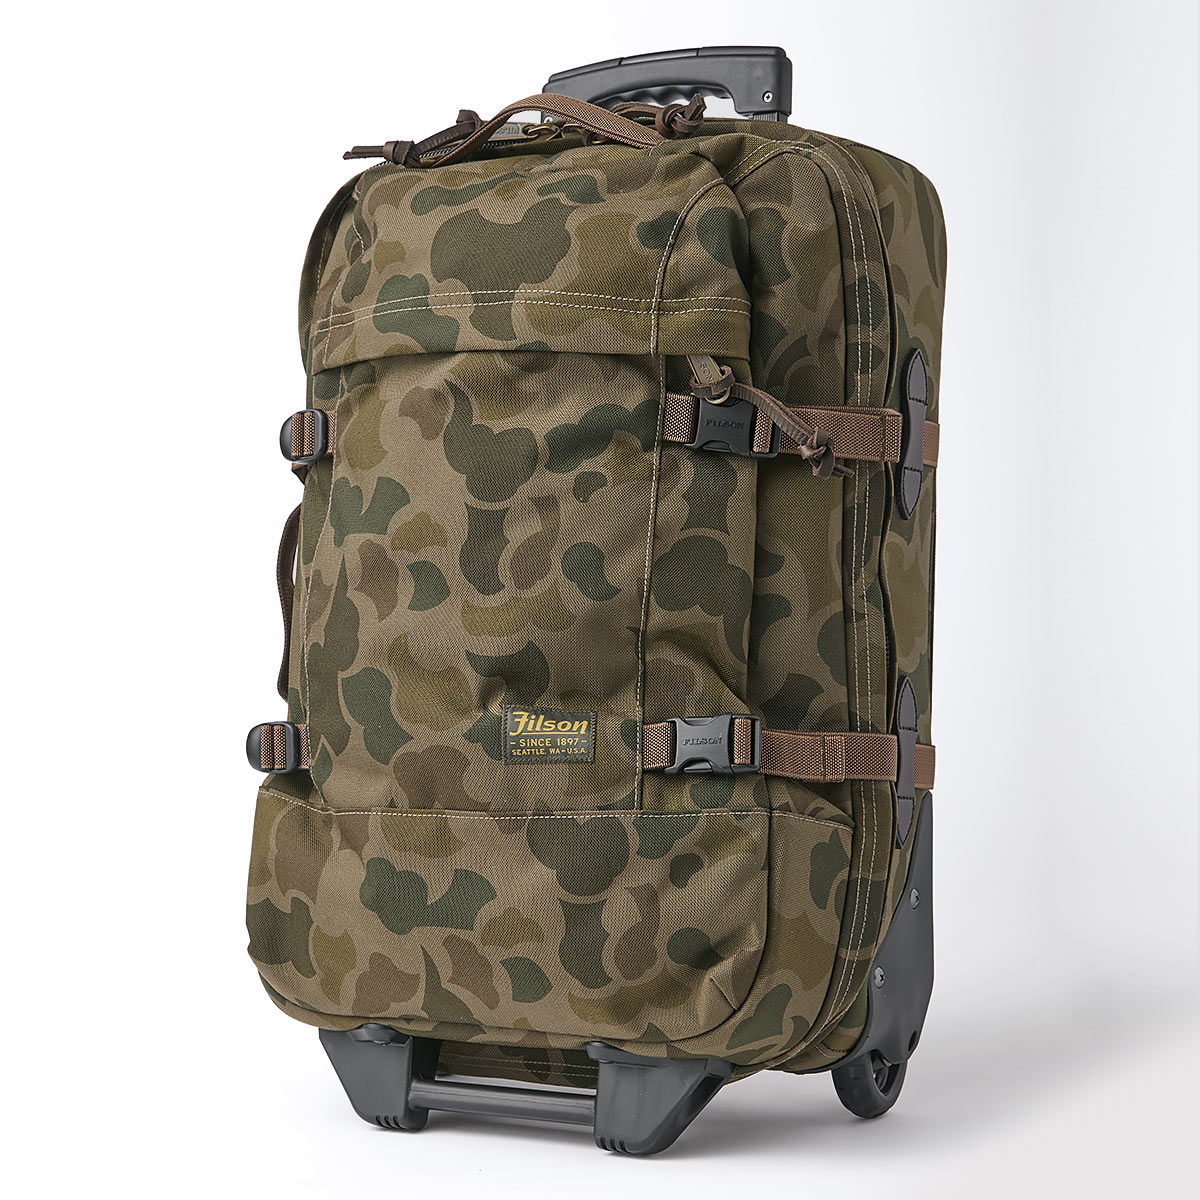 Filson Dryden Dryden 2-Wheel Rolling Carry-On Bag 20047728-Dark Shrub Camo, built with abrasion-resistant ballistic nylon for years of reliable travel